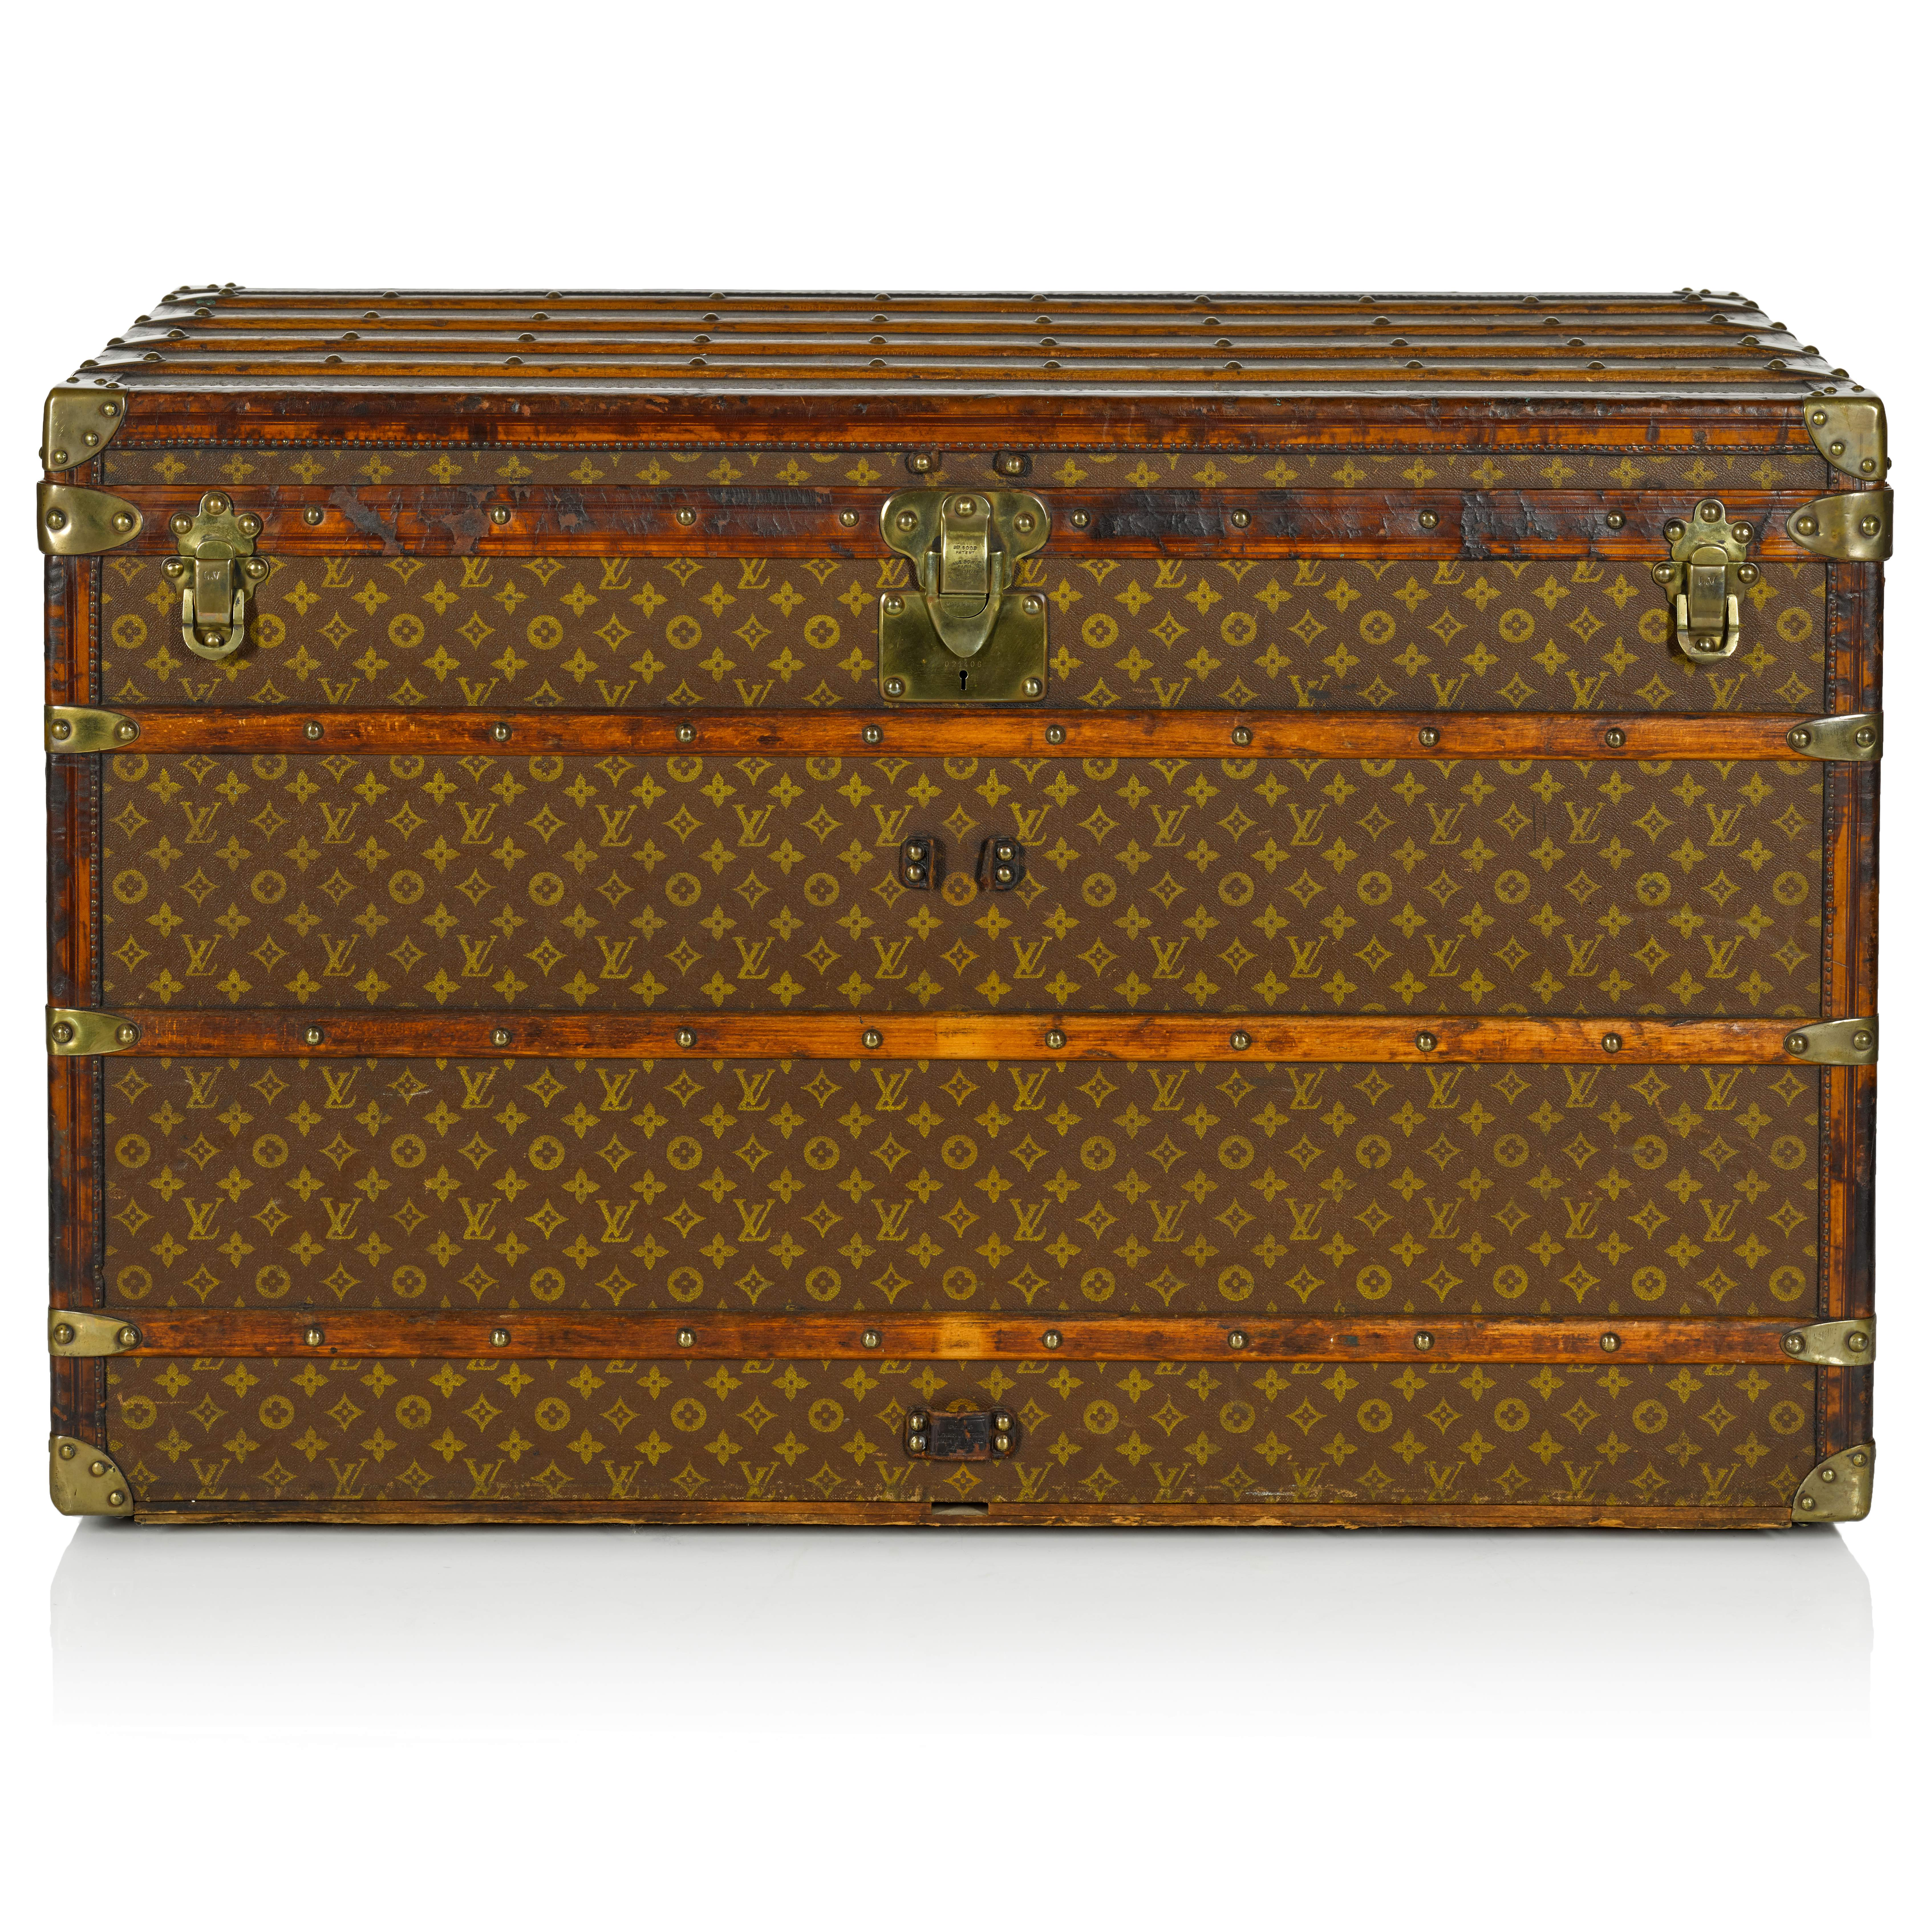 View full screen - View 1 of Lot 99. Monogram Steamer Trunk, 1930s.